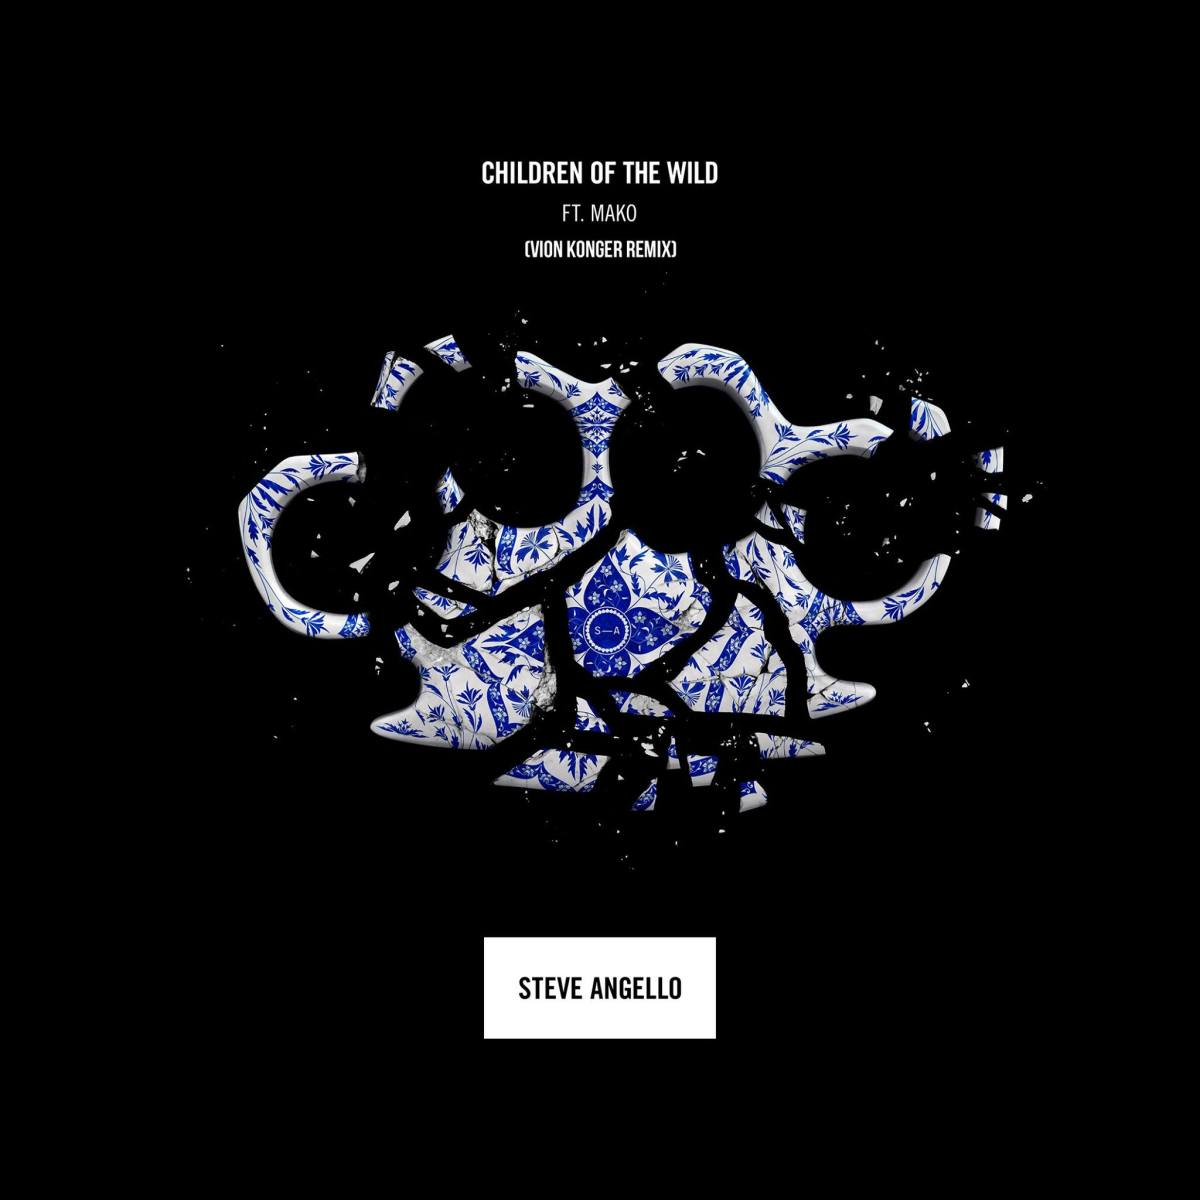 Steve Angello feat. Mako - Children Of The Wild (Vion Konger Remix)